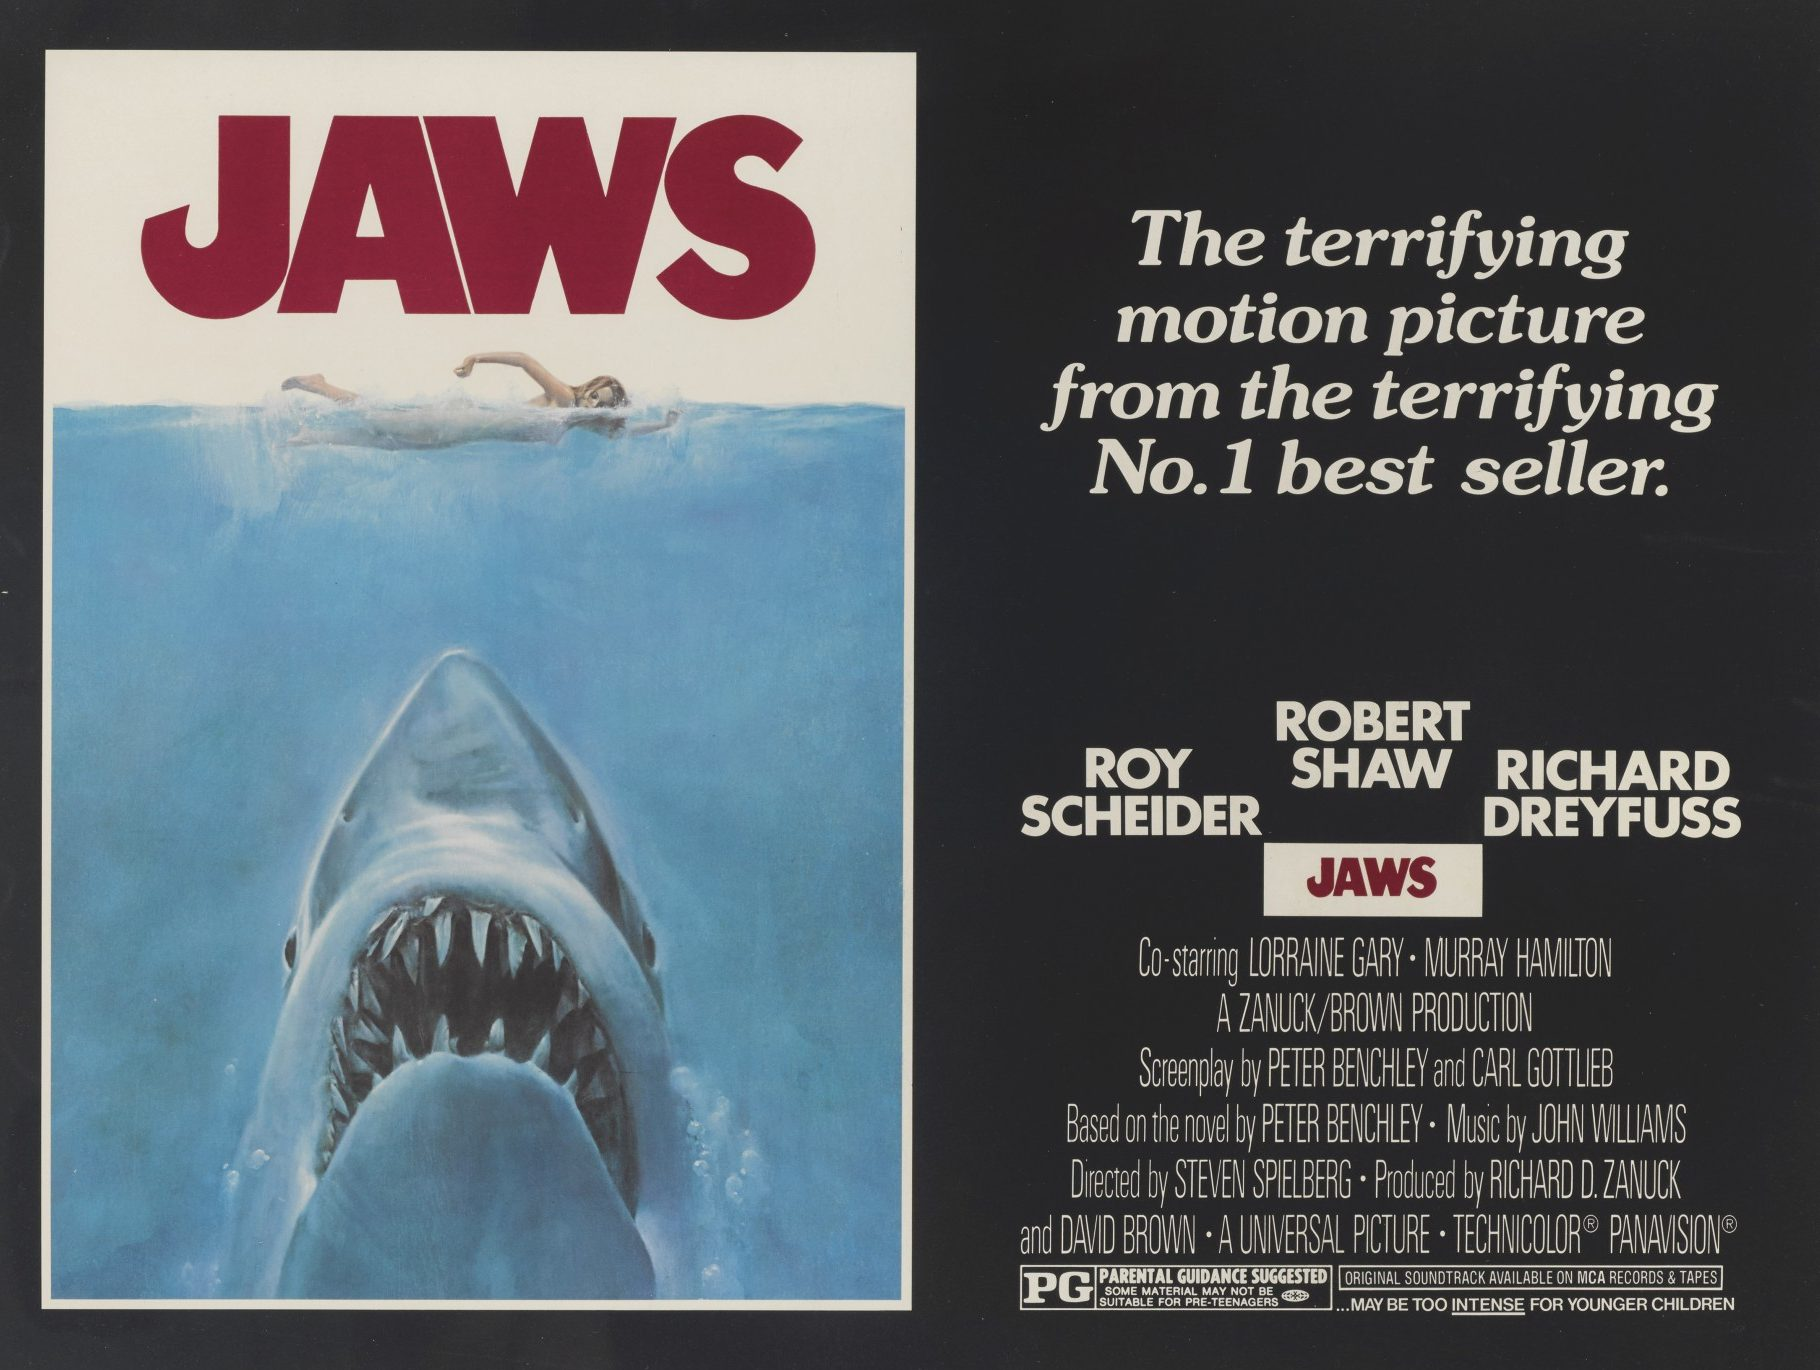 192l20895 bj963 001 e1615811766761 27 Things You Didn't Know About Jaws